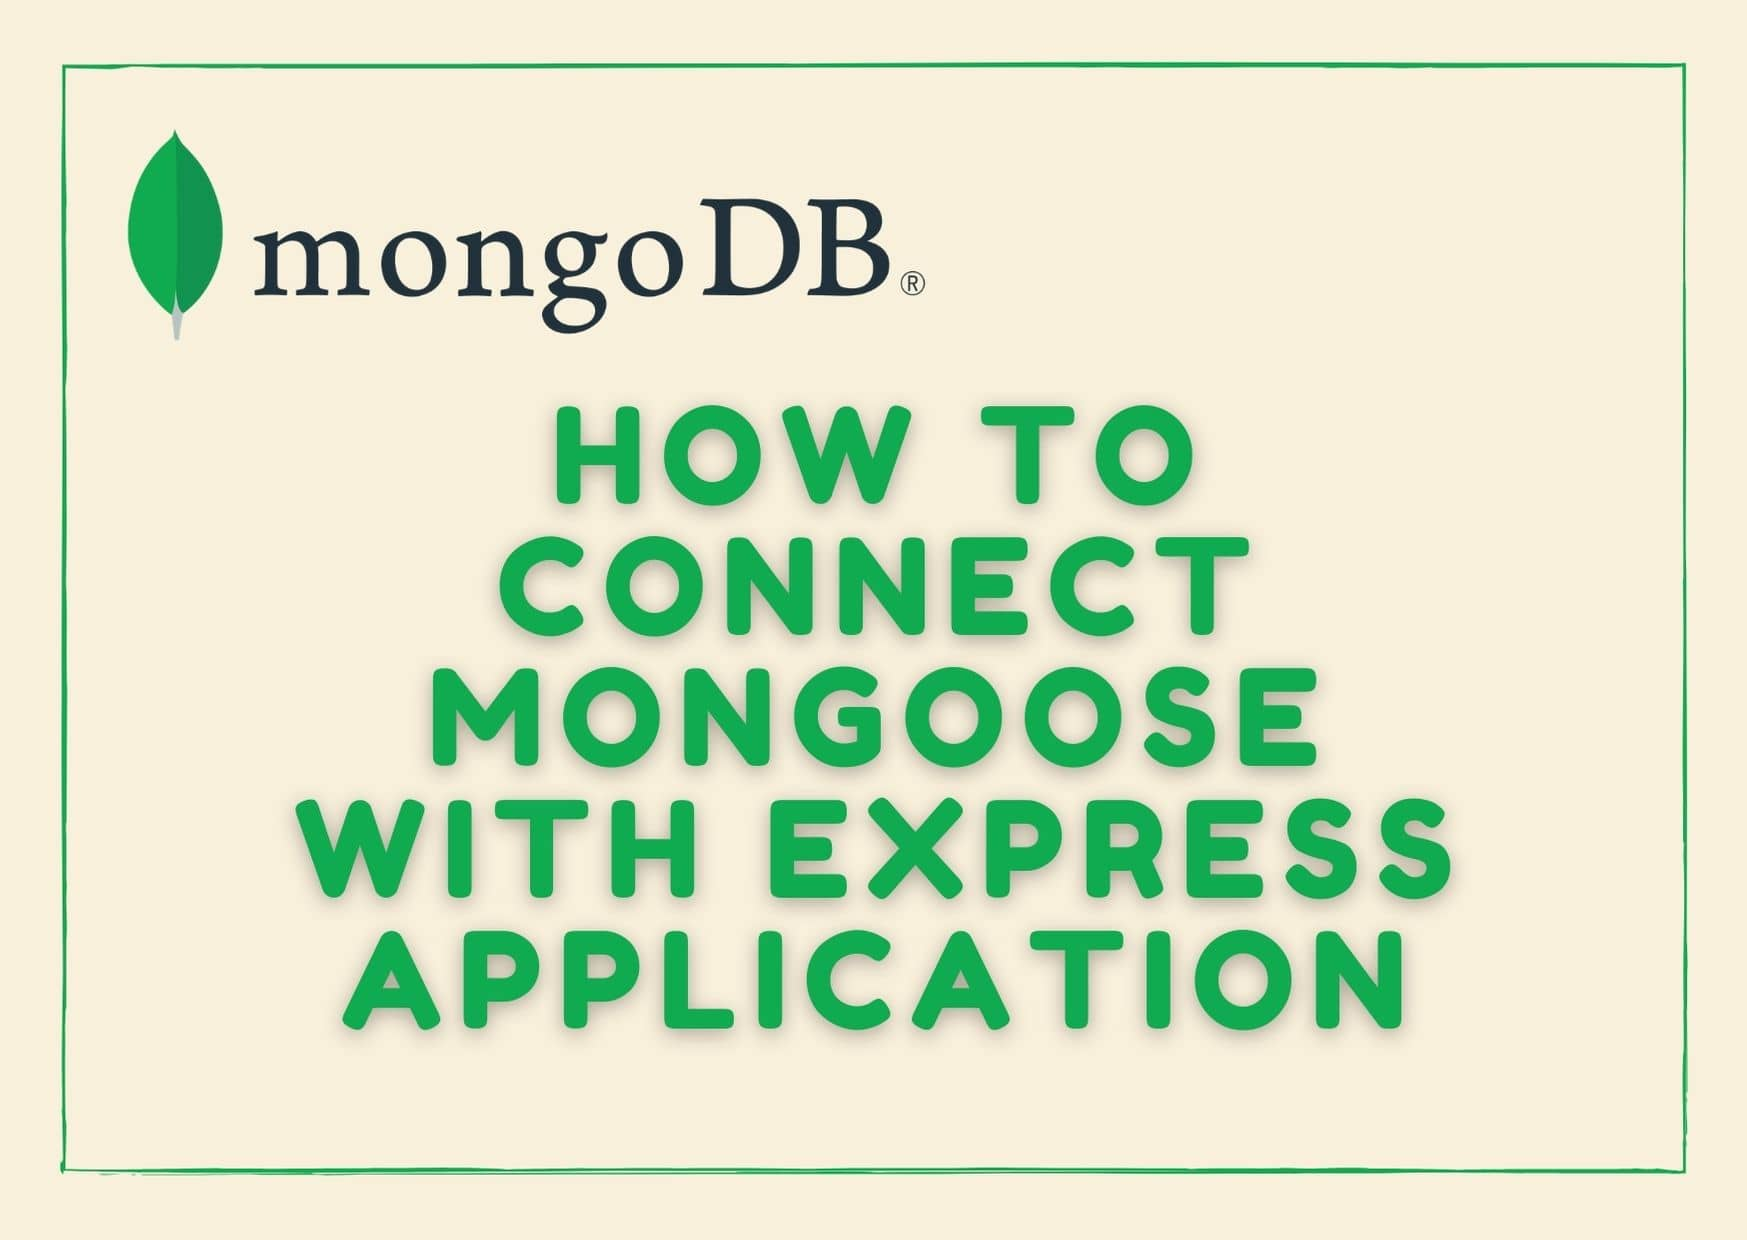 How To Connect Mongoose (MongoDB) with Express Application